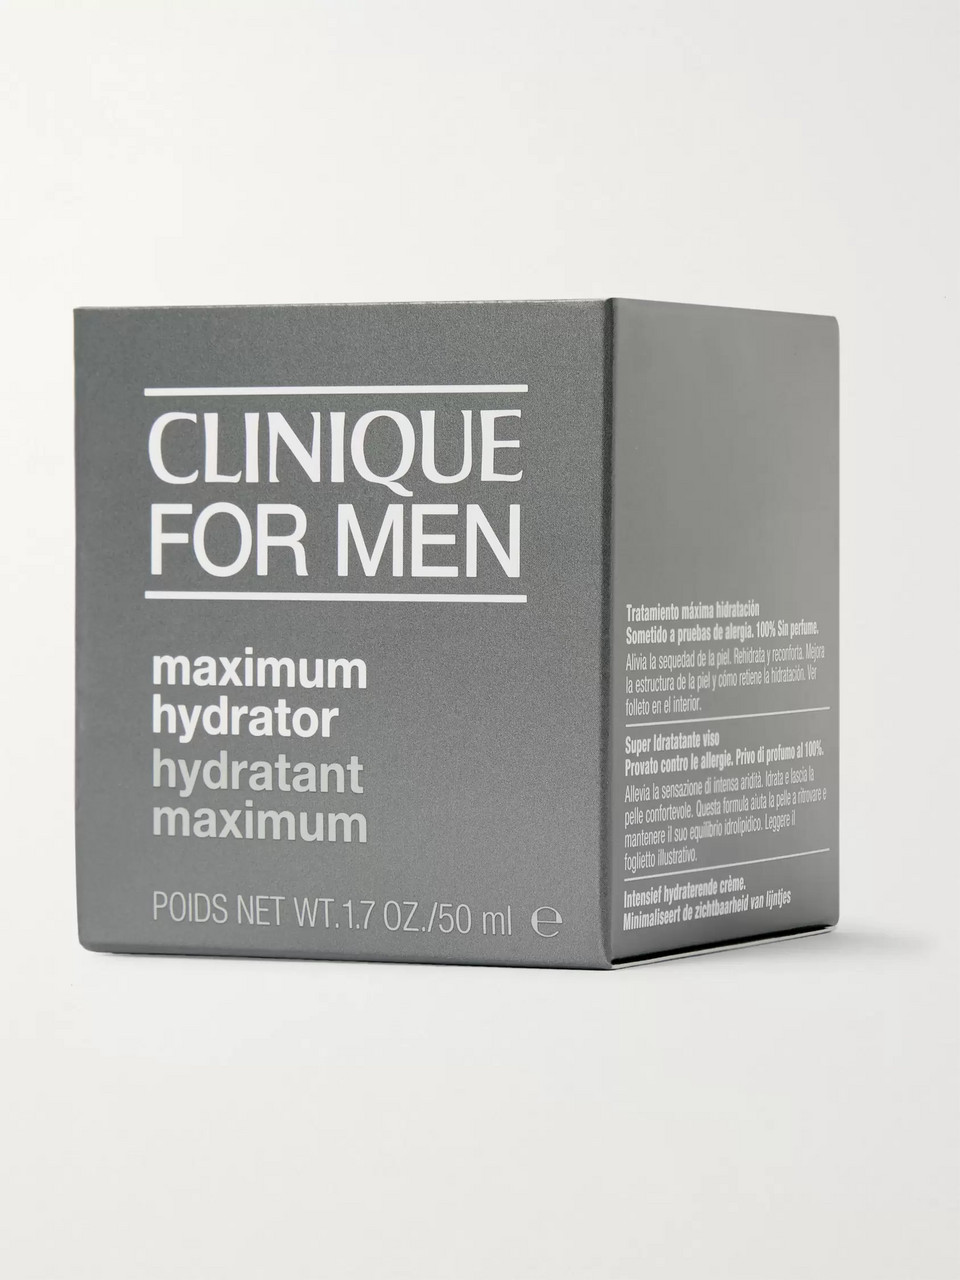 Clinique For Men Maximum Hydrator, 50ml